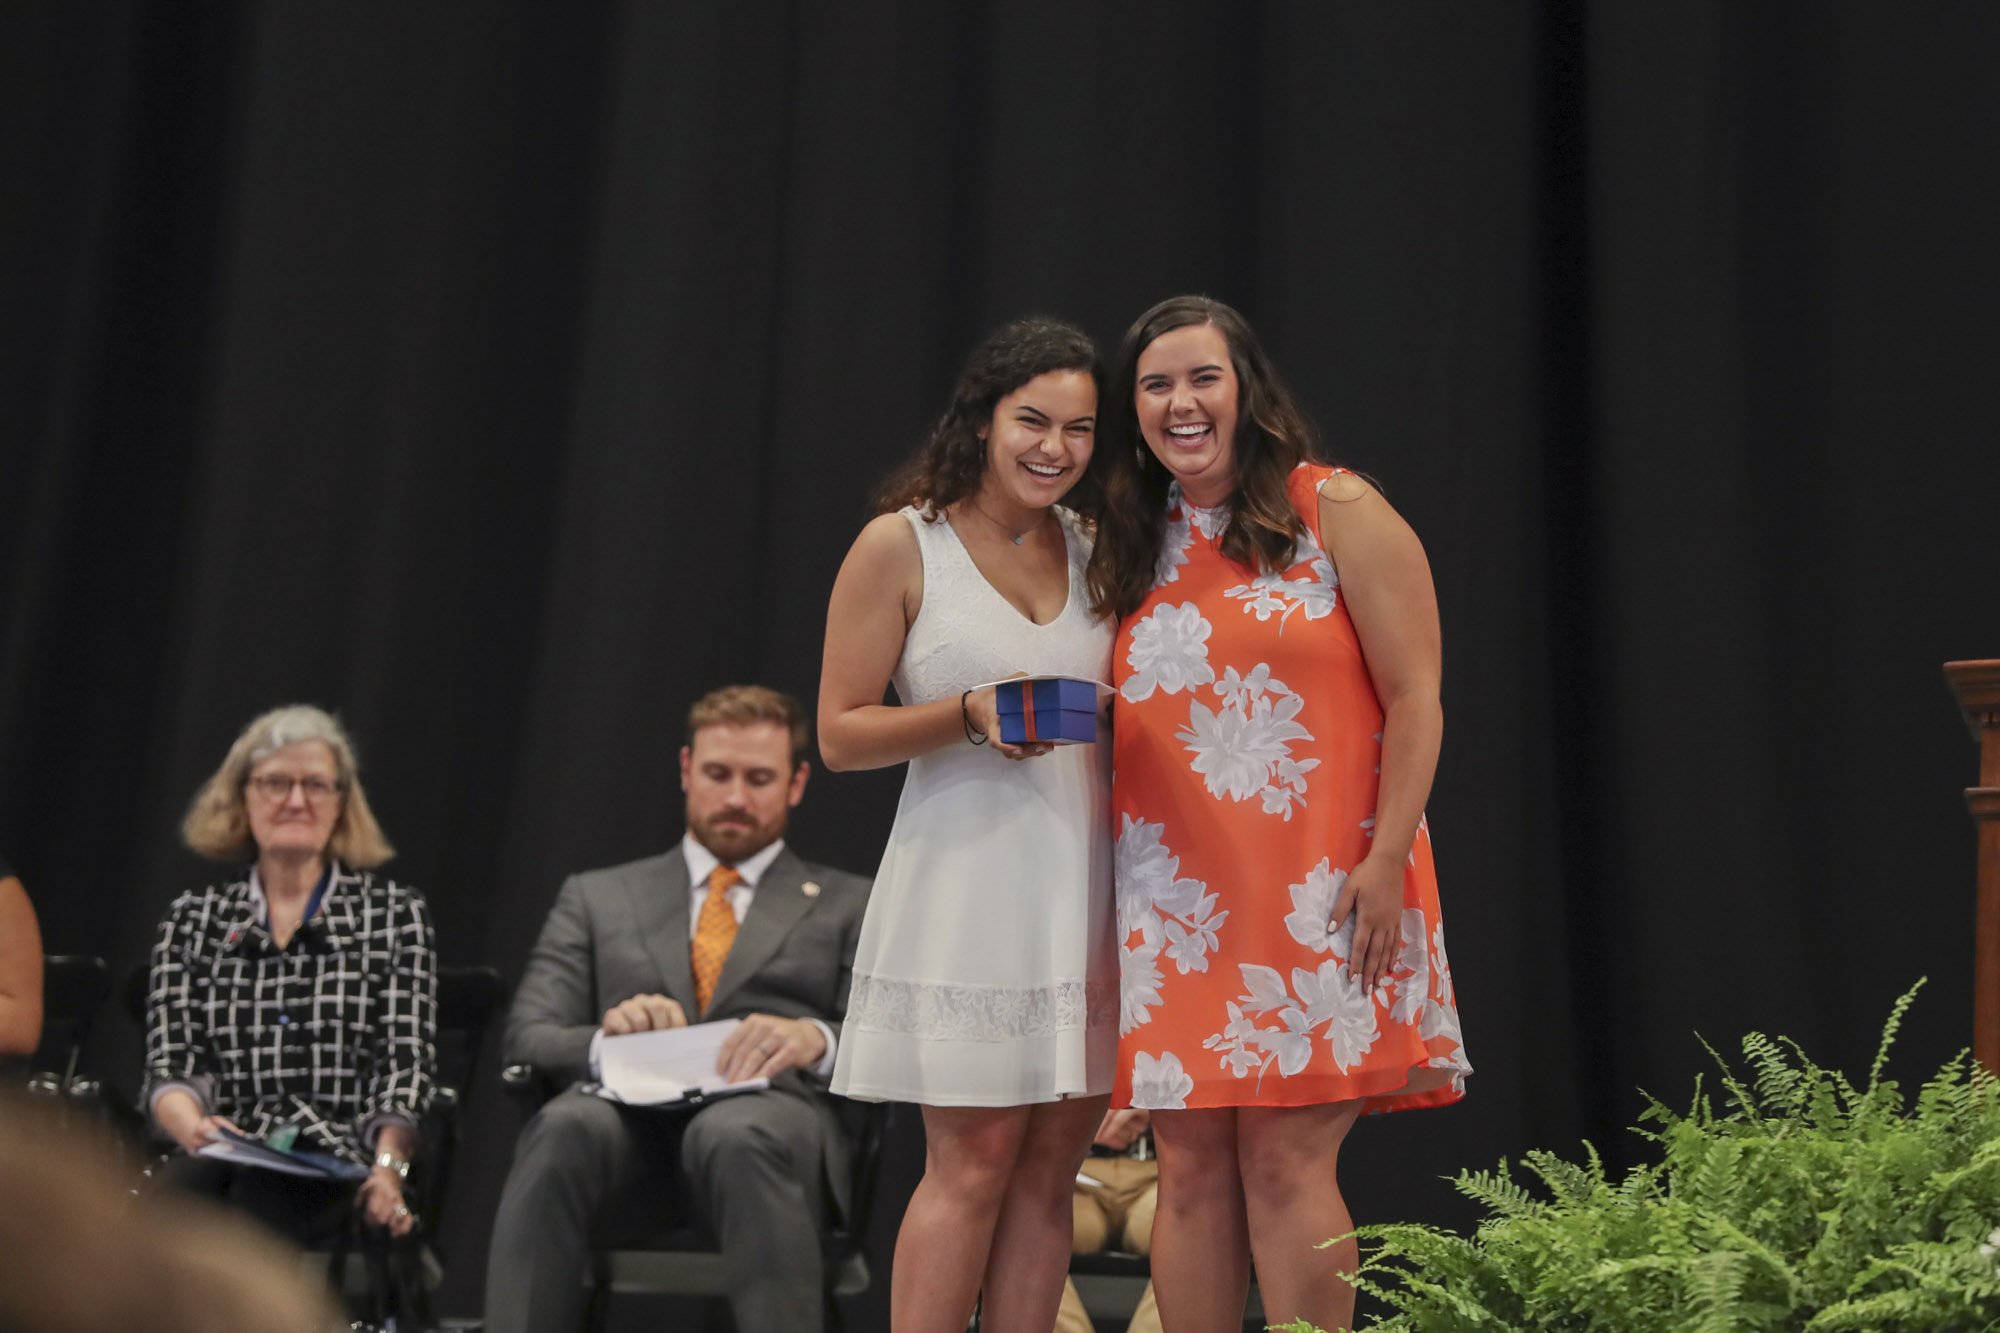 The Miss Kathy Award, given for kindness, positivity and good nature, went to Sarah Brotman, a public policy and leadership graduate.